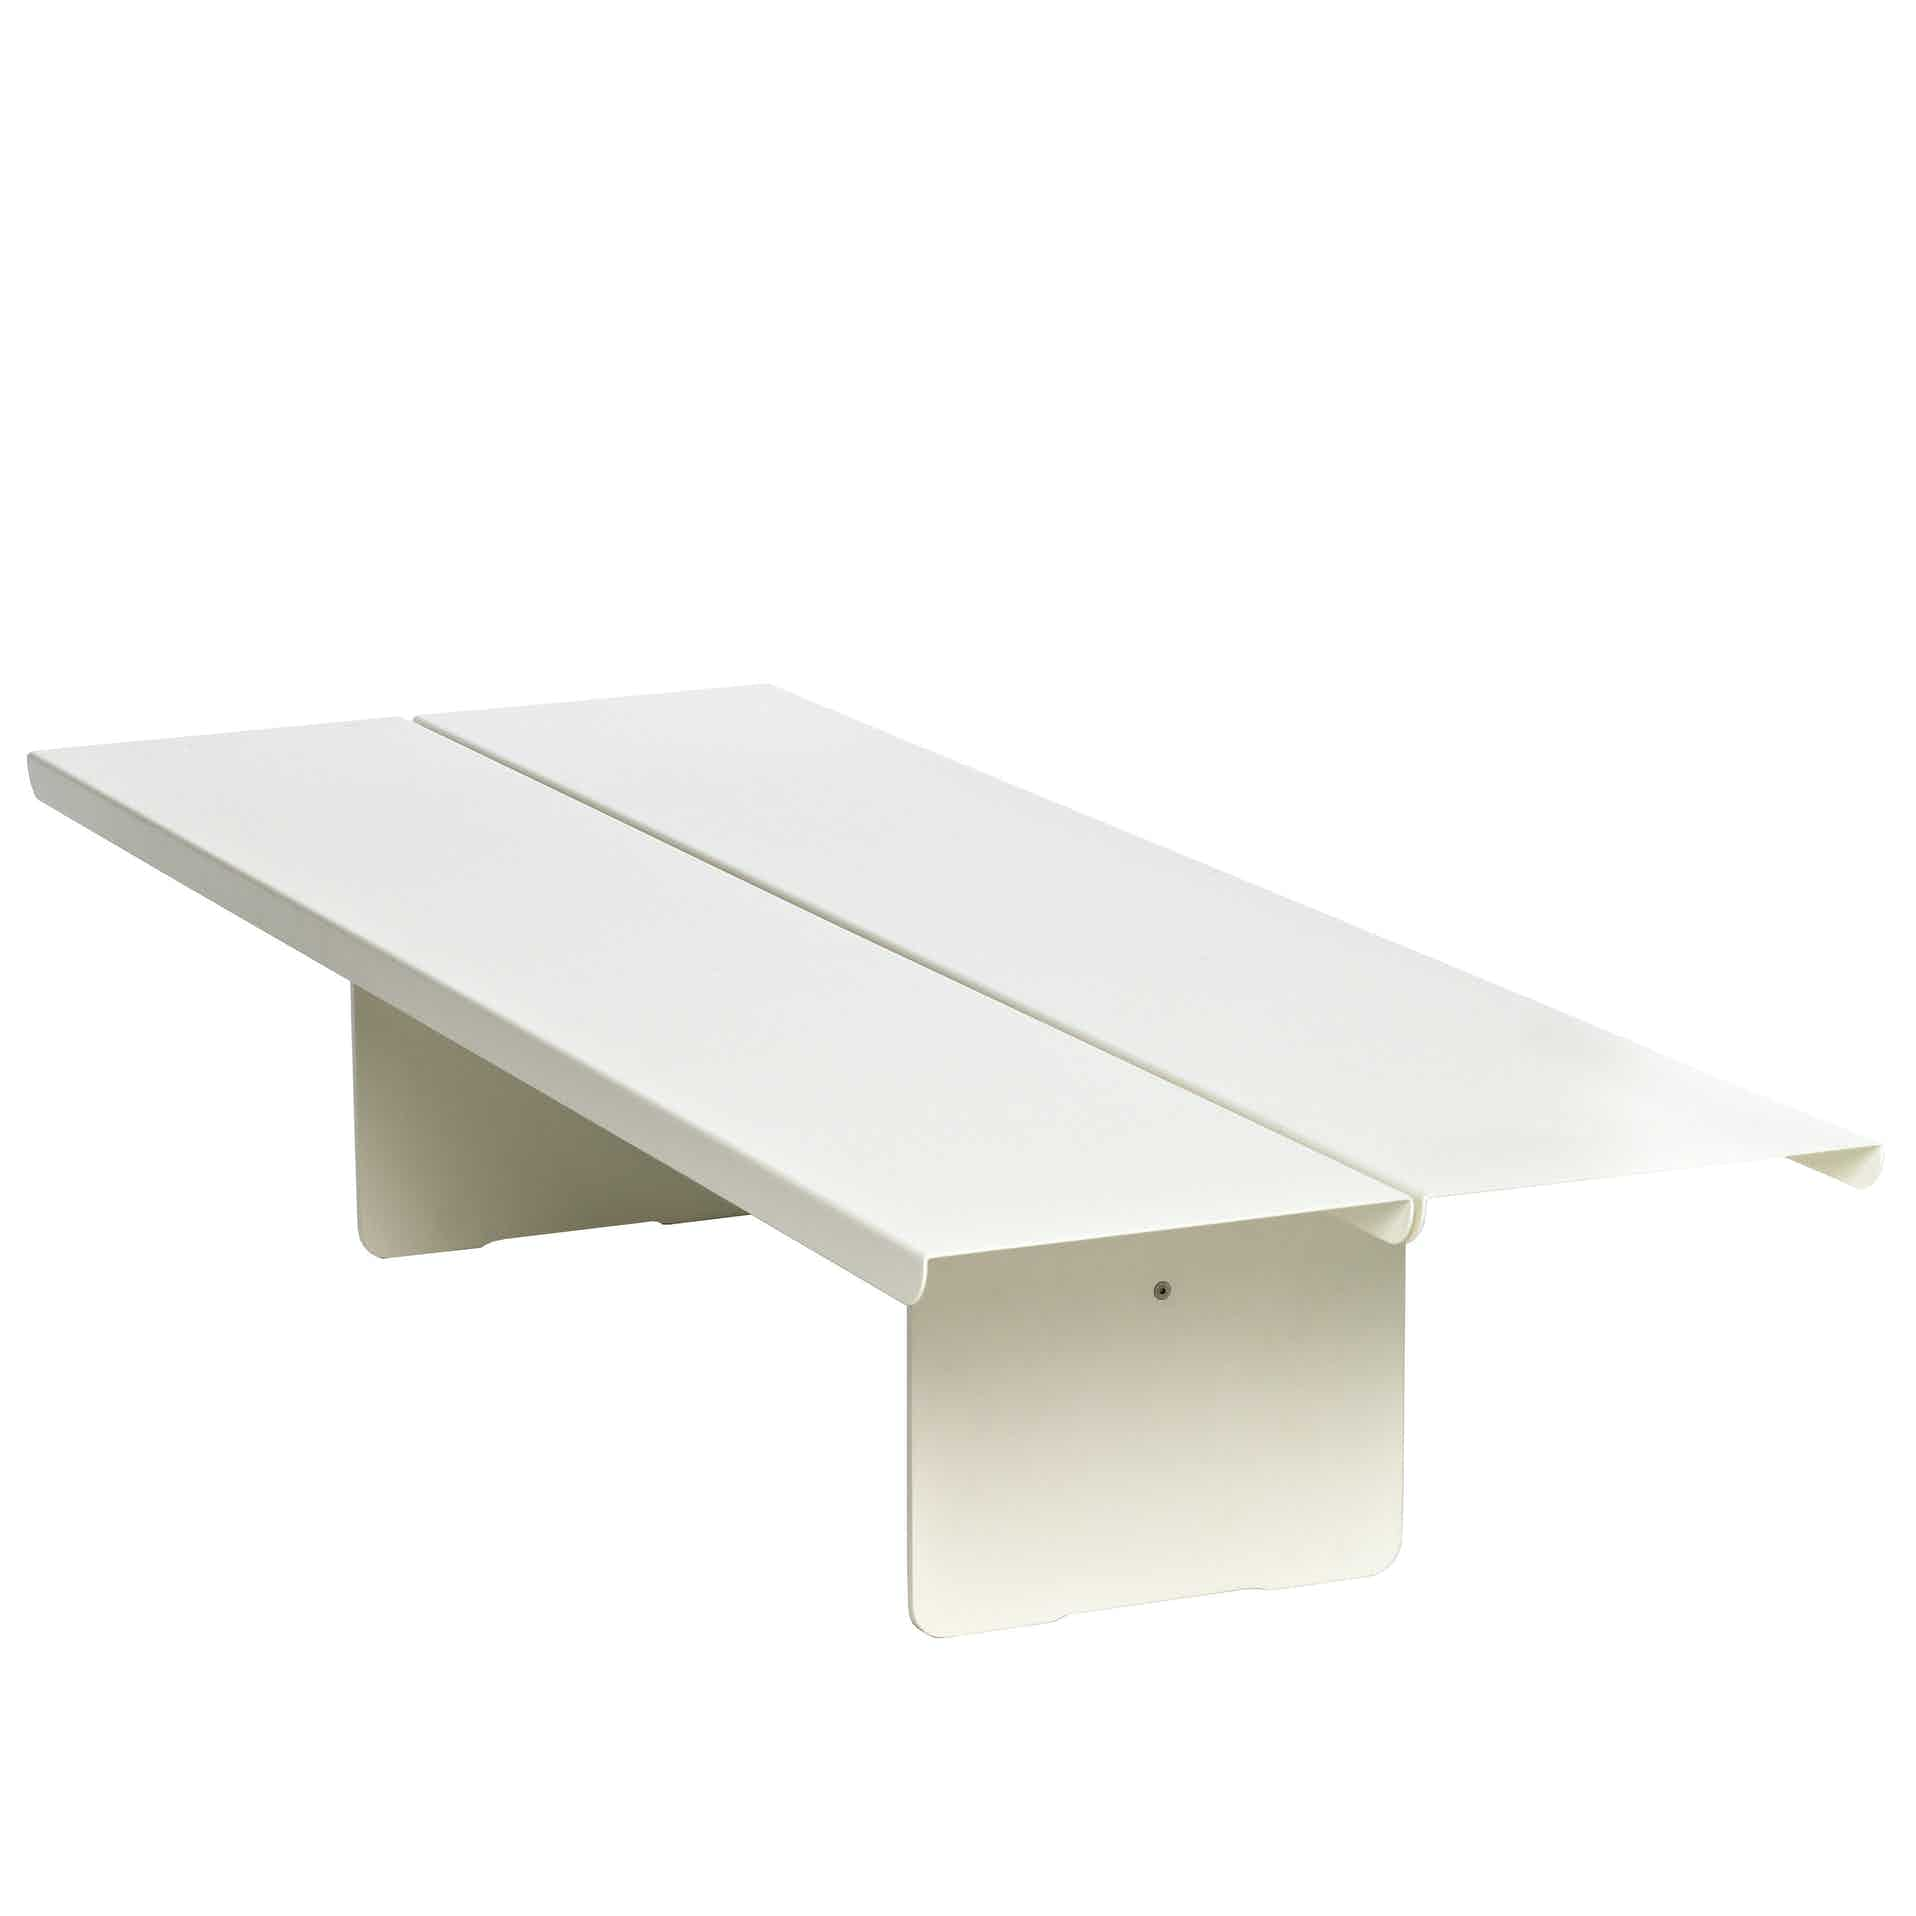 Resident-furniture-flyover-table-long-thumb-haute-living